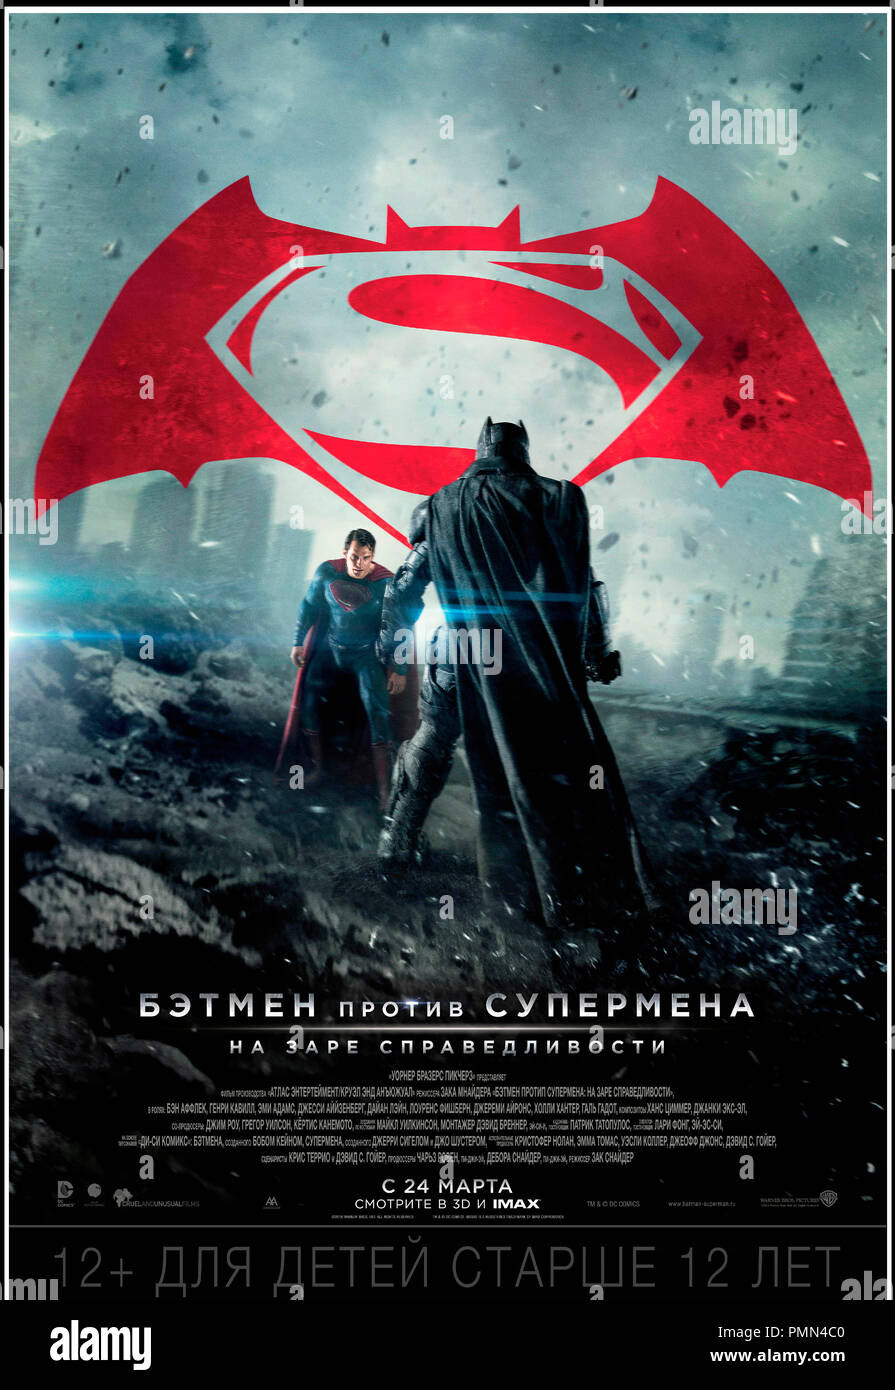 Prod DB © Warner Bros. - DC Entertainment - RatPac-Dune Entertainment - Syncopy / DR BATMAN V SUPERMAN: L'AUBE DE LA JUSTICE (BATMAN VS. SUPERMAN: DAWN OF JUSTICE) de Zack Snyder 2016 USA affiche russe super heros d'apres les personnages créés par Bob Kane et Bill Finger (Batman) et Jerry Siegel et Joe Shuster (Superman) - Stock Image